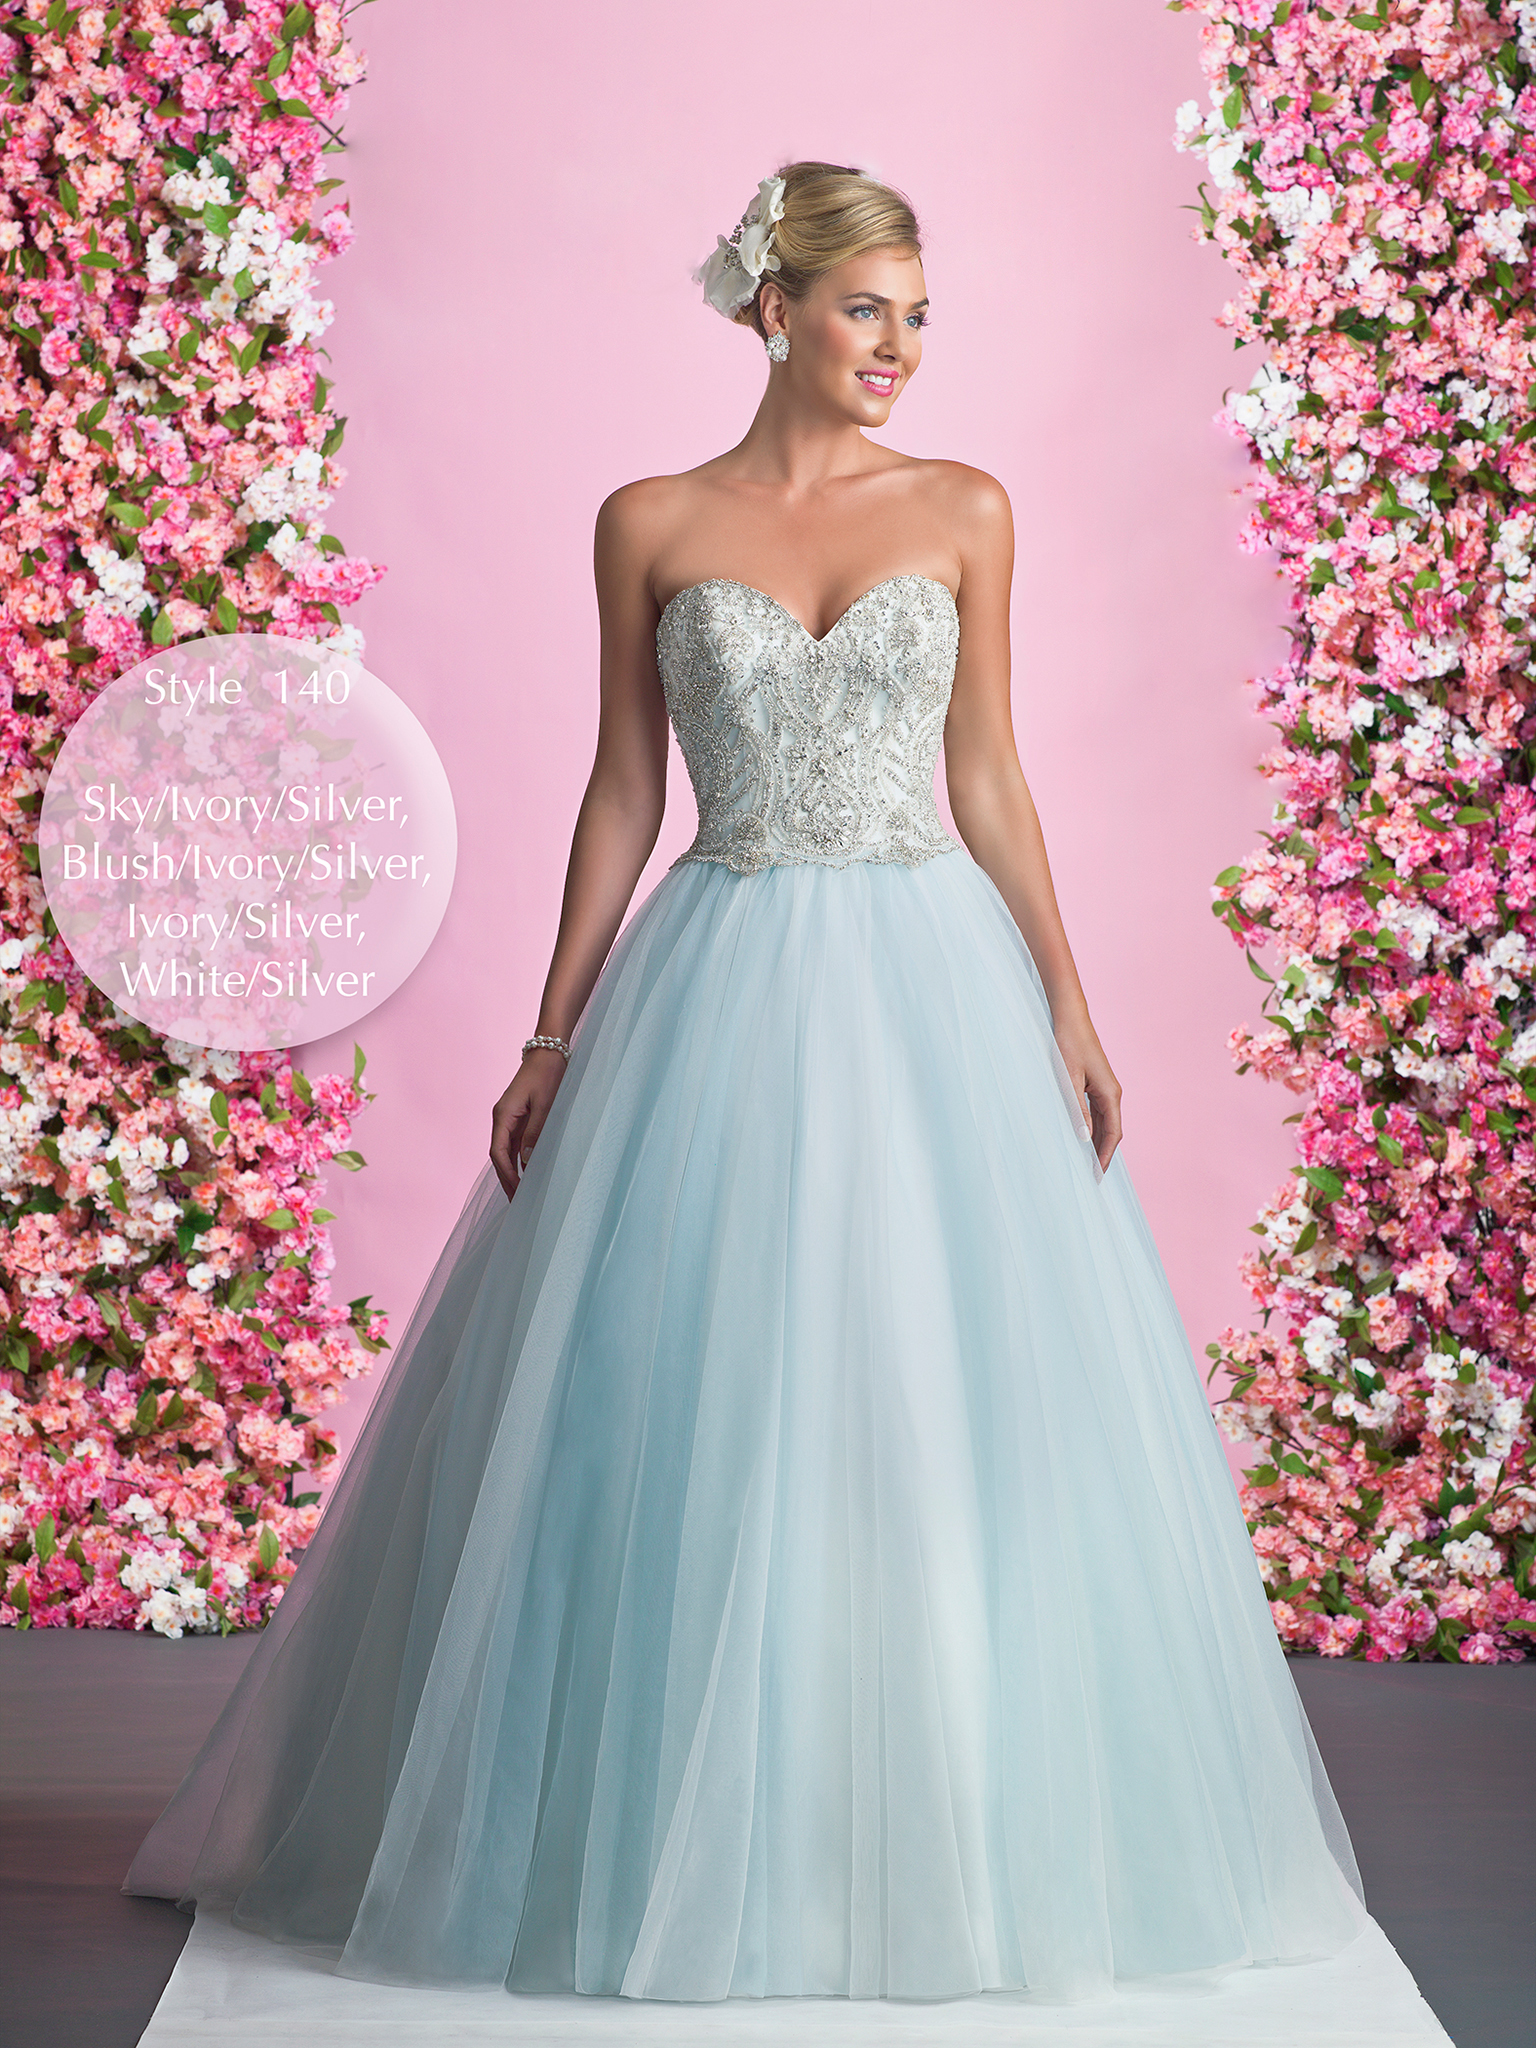 Winter wonderland wedding dress – Alexia Designs UK